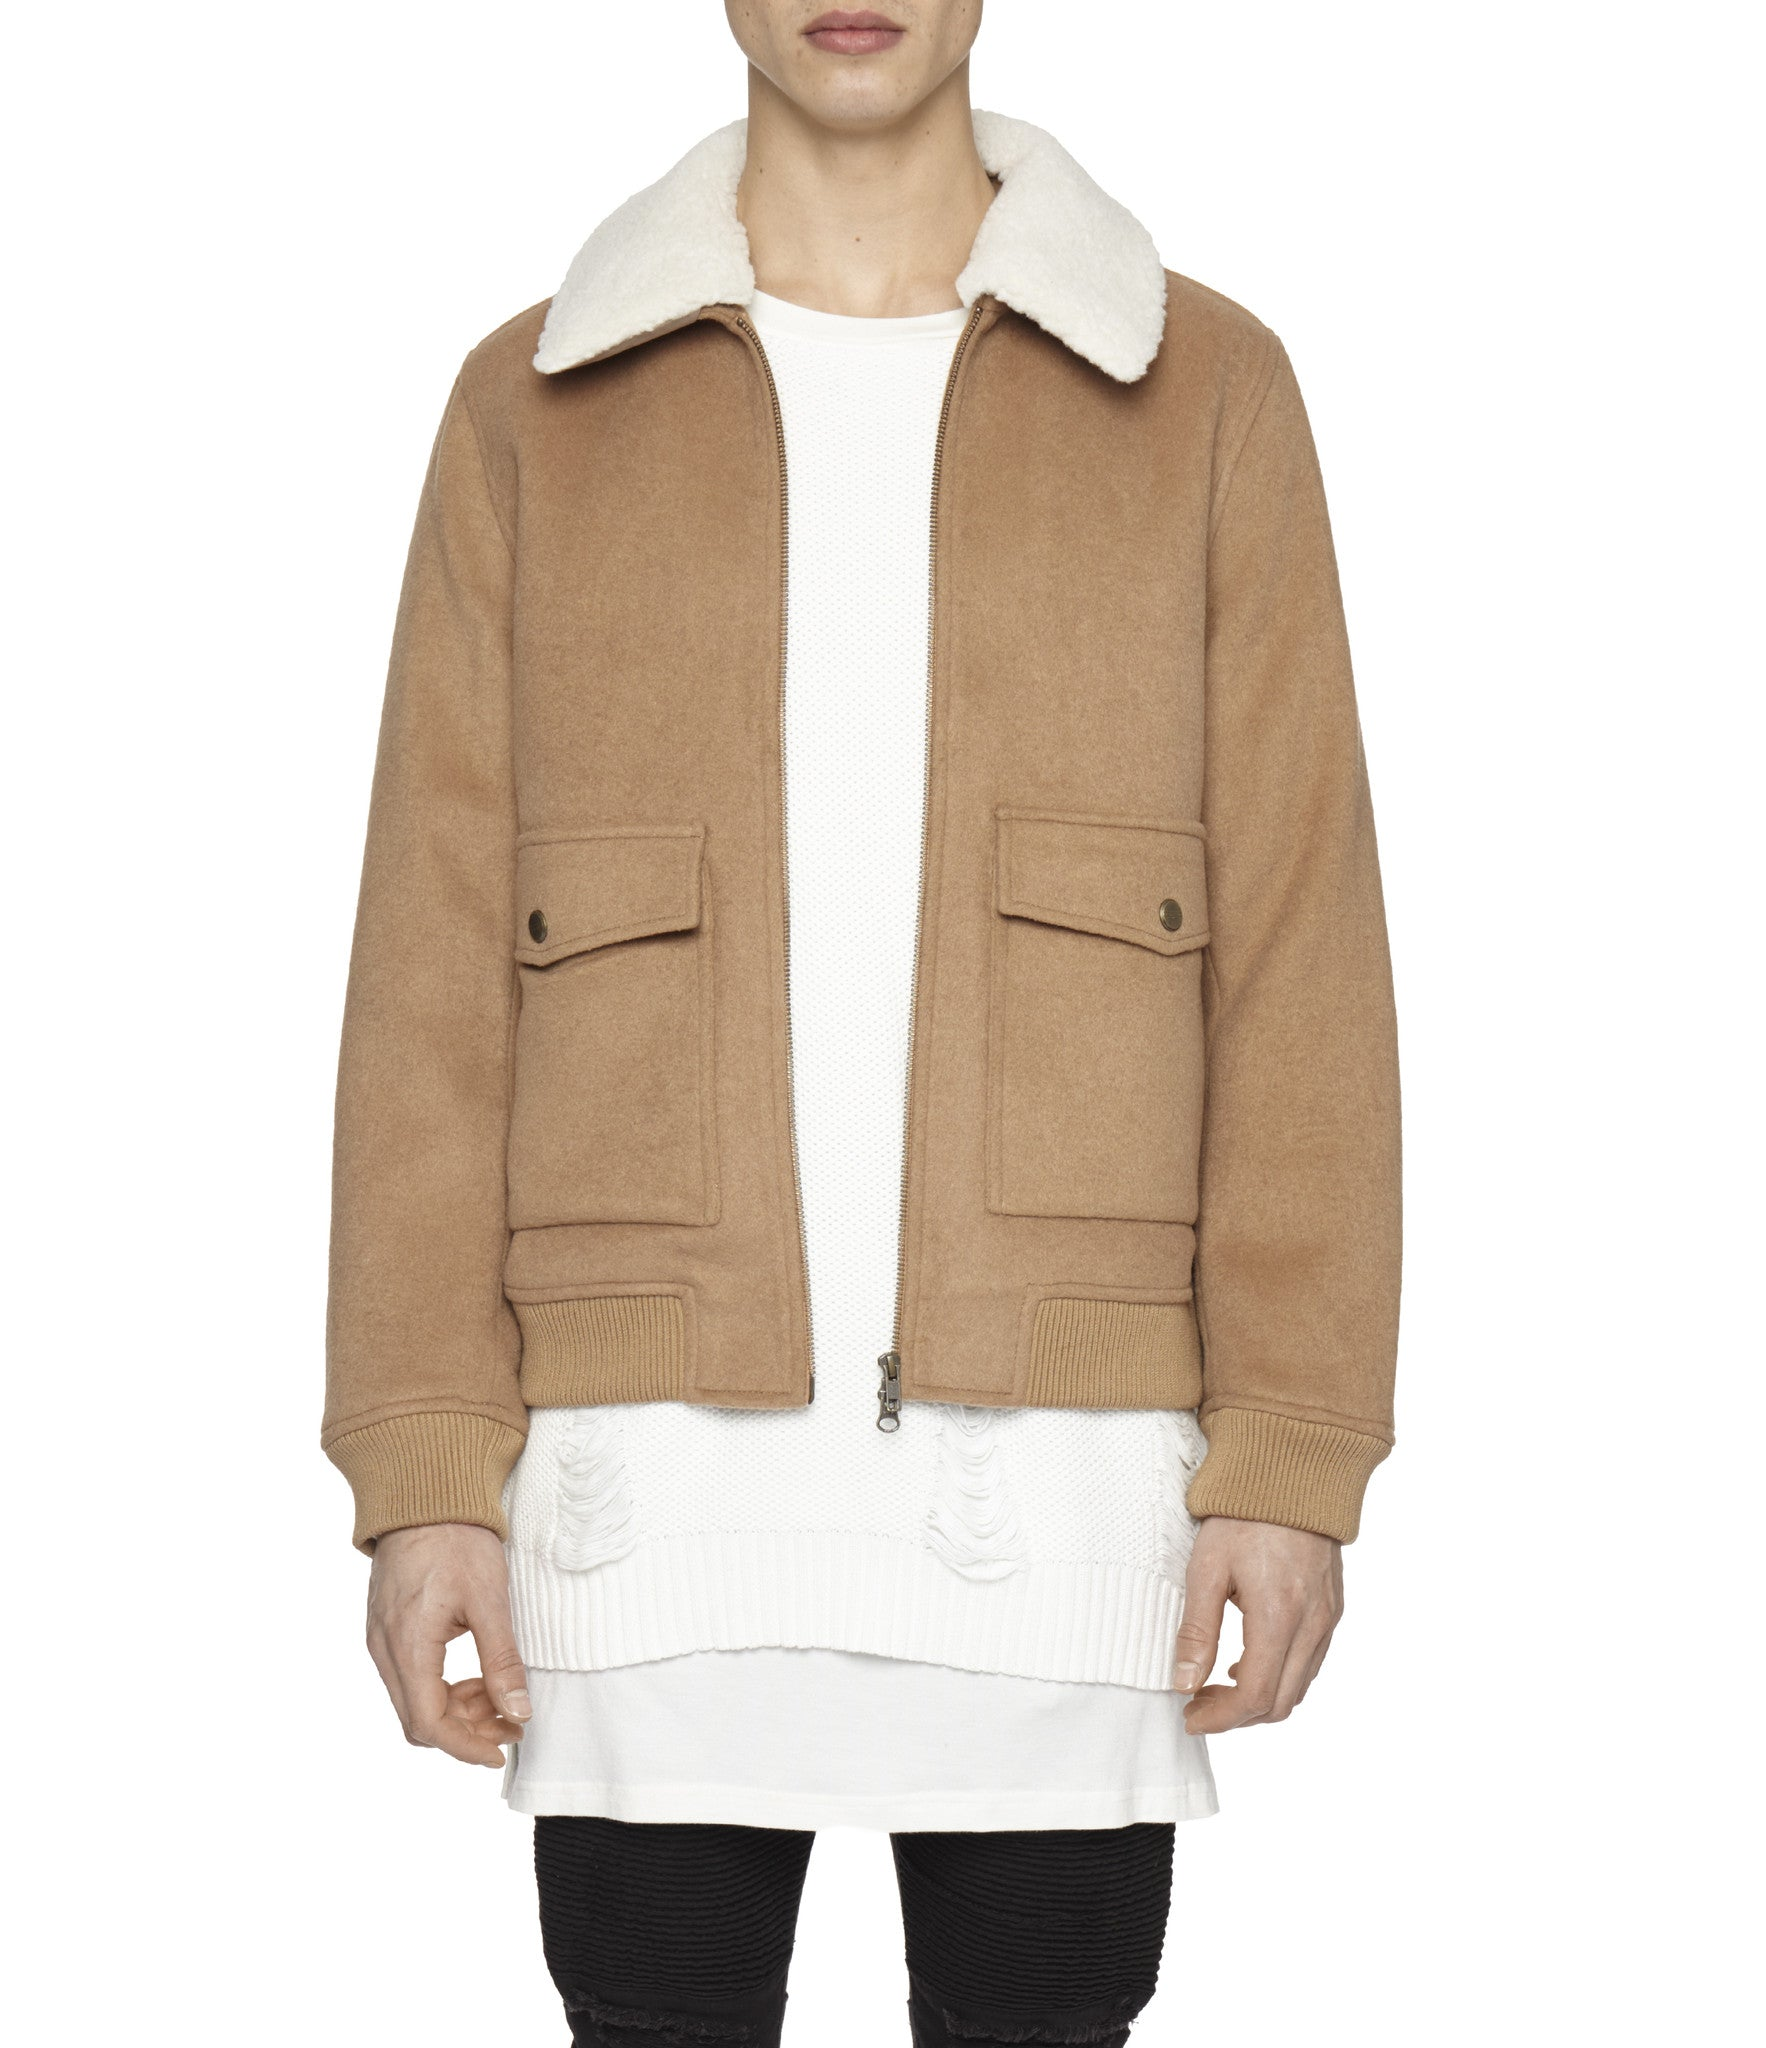 BM20 Shearling-Trimmed Wool Jacket - Camel - underated london - underatedco - 1